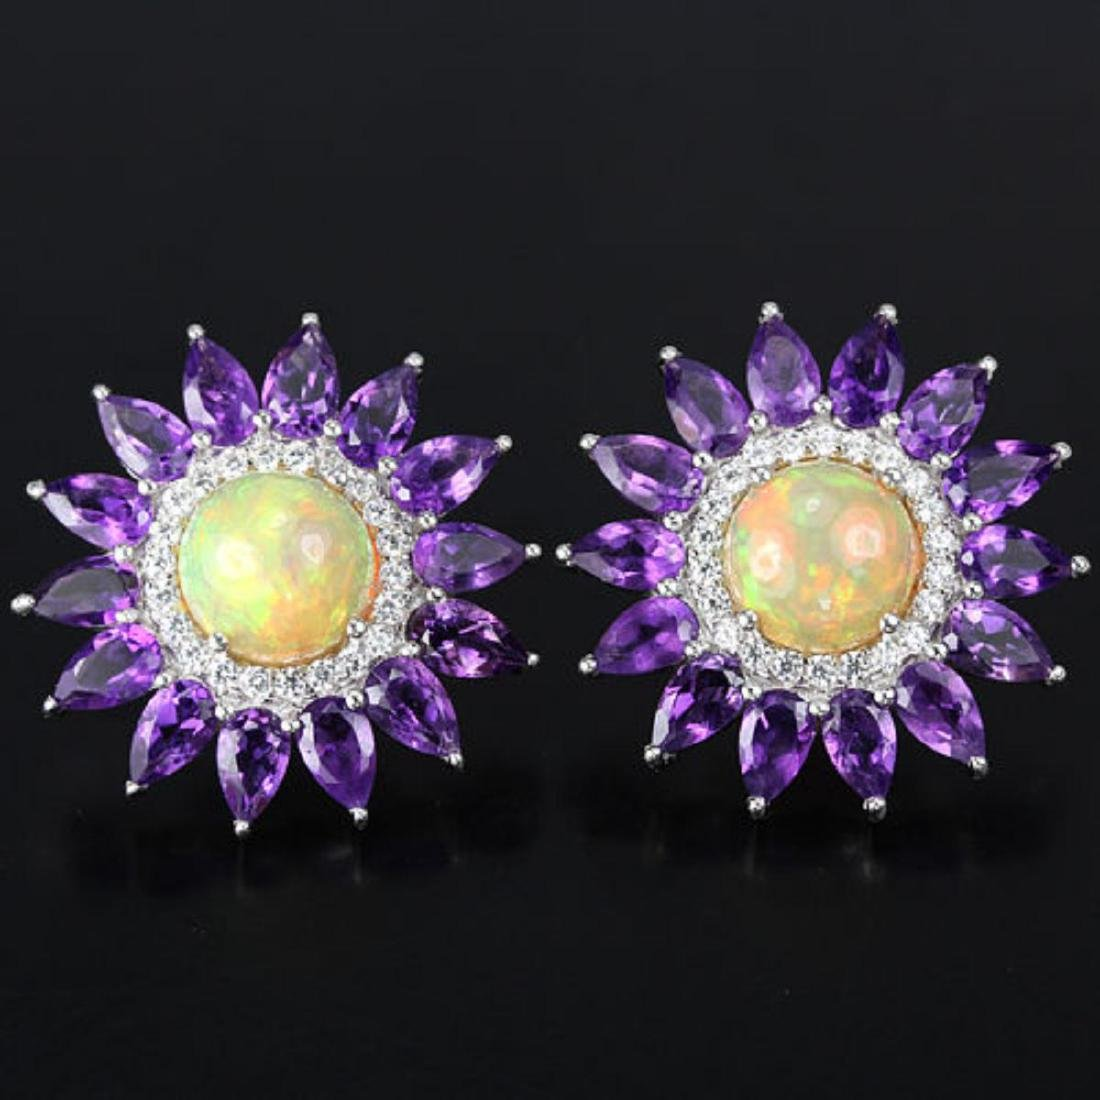 NATURAL RAINBOW OPAL, PURPLE AMETHYST TOPAZ Earrings